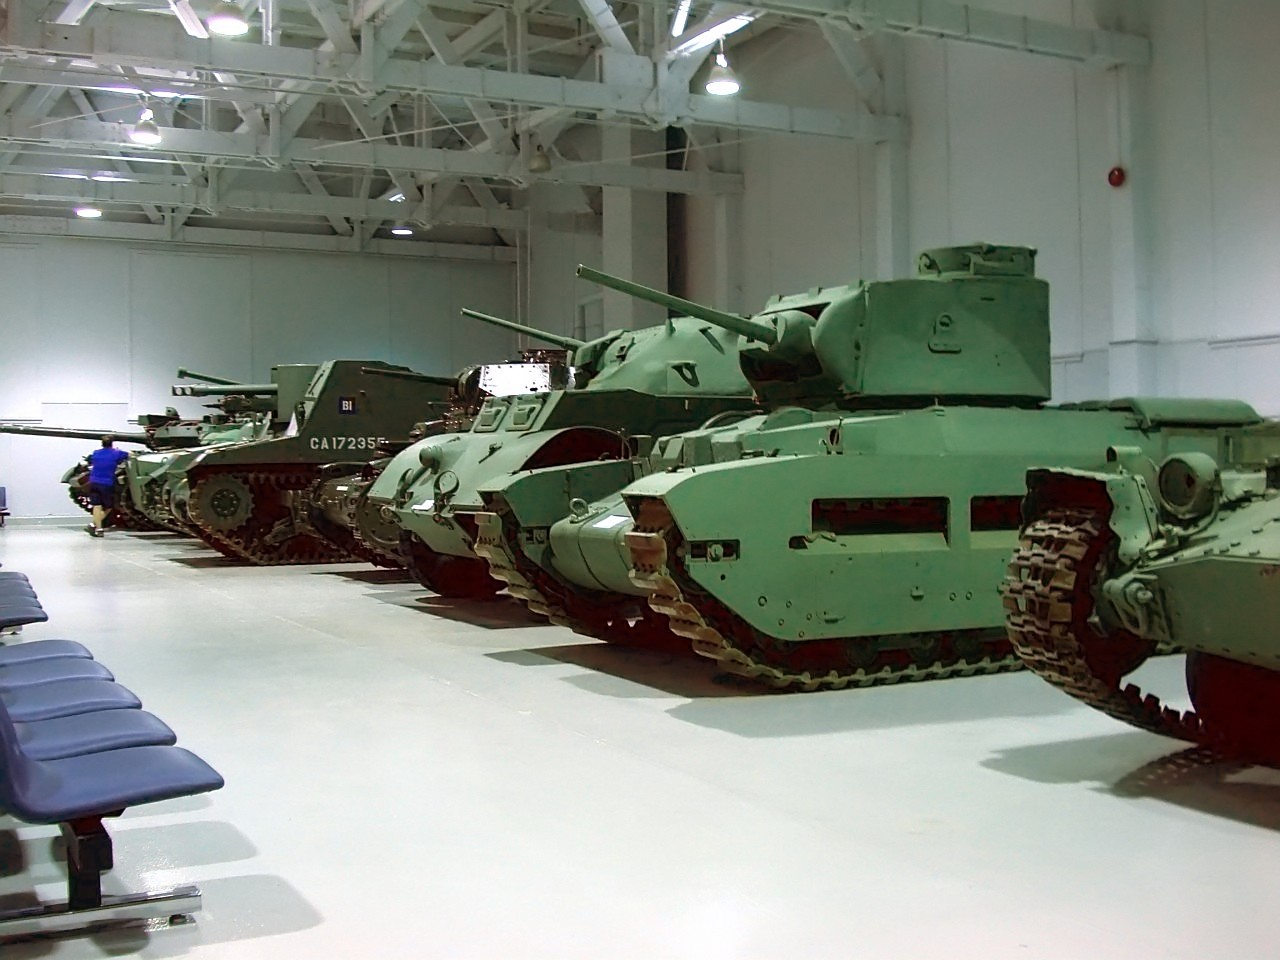 File:Base Borden Military Museum Indoor Vehicle Display ...